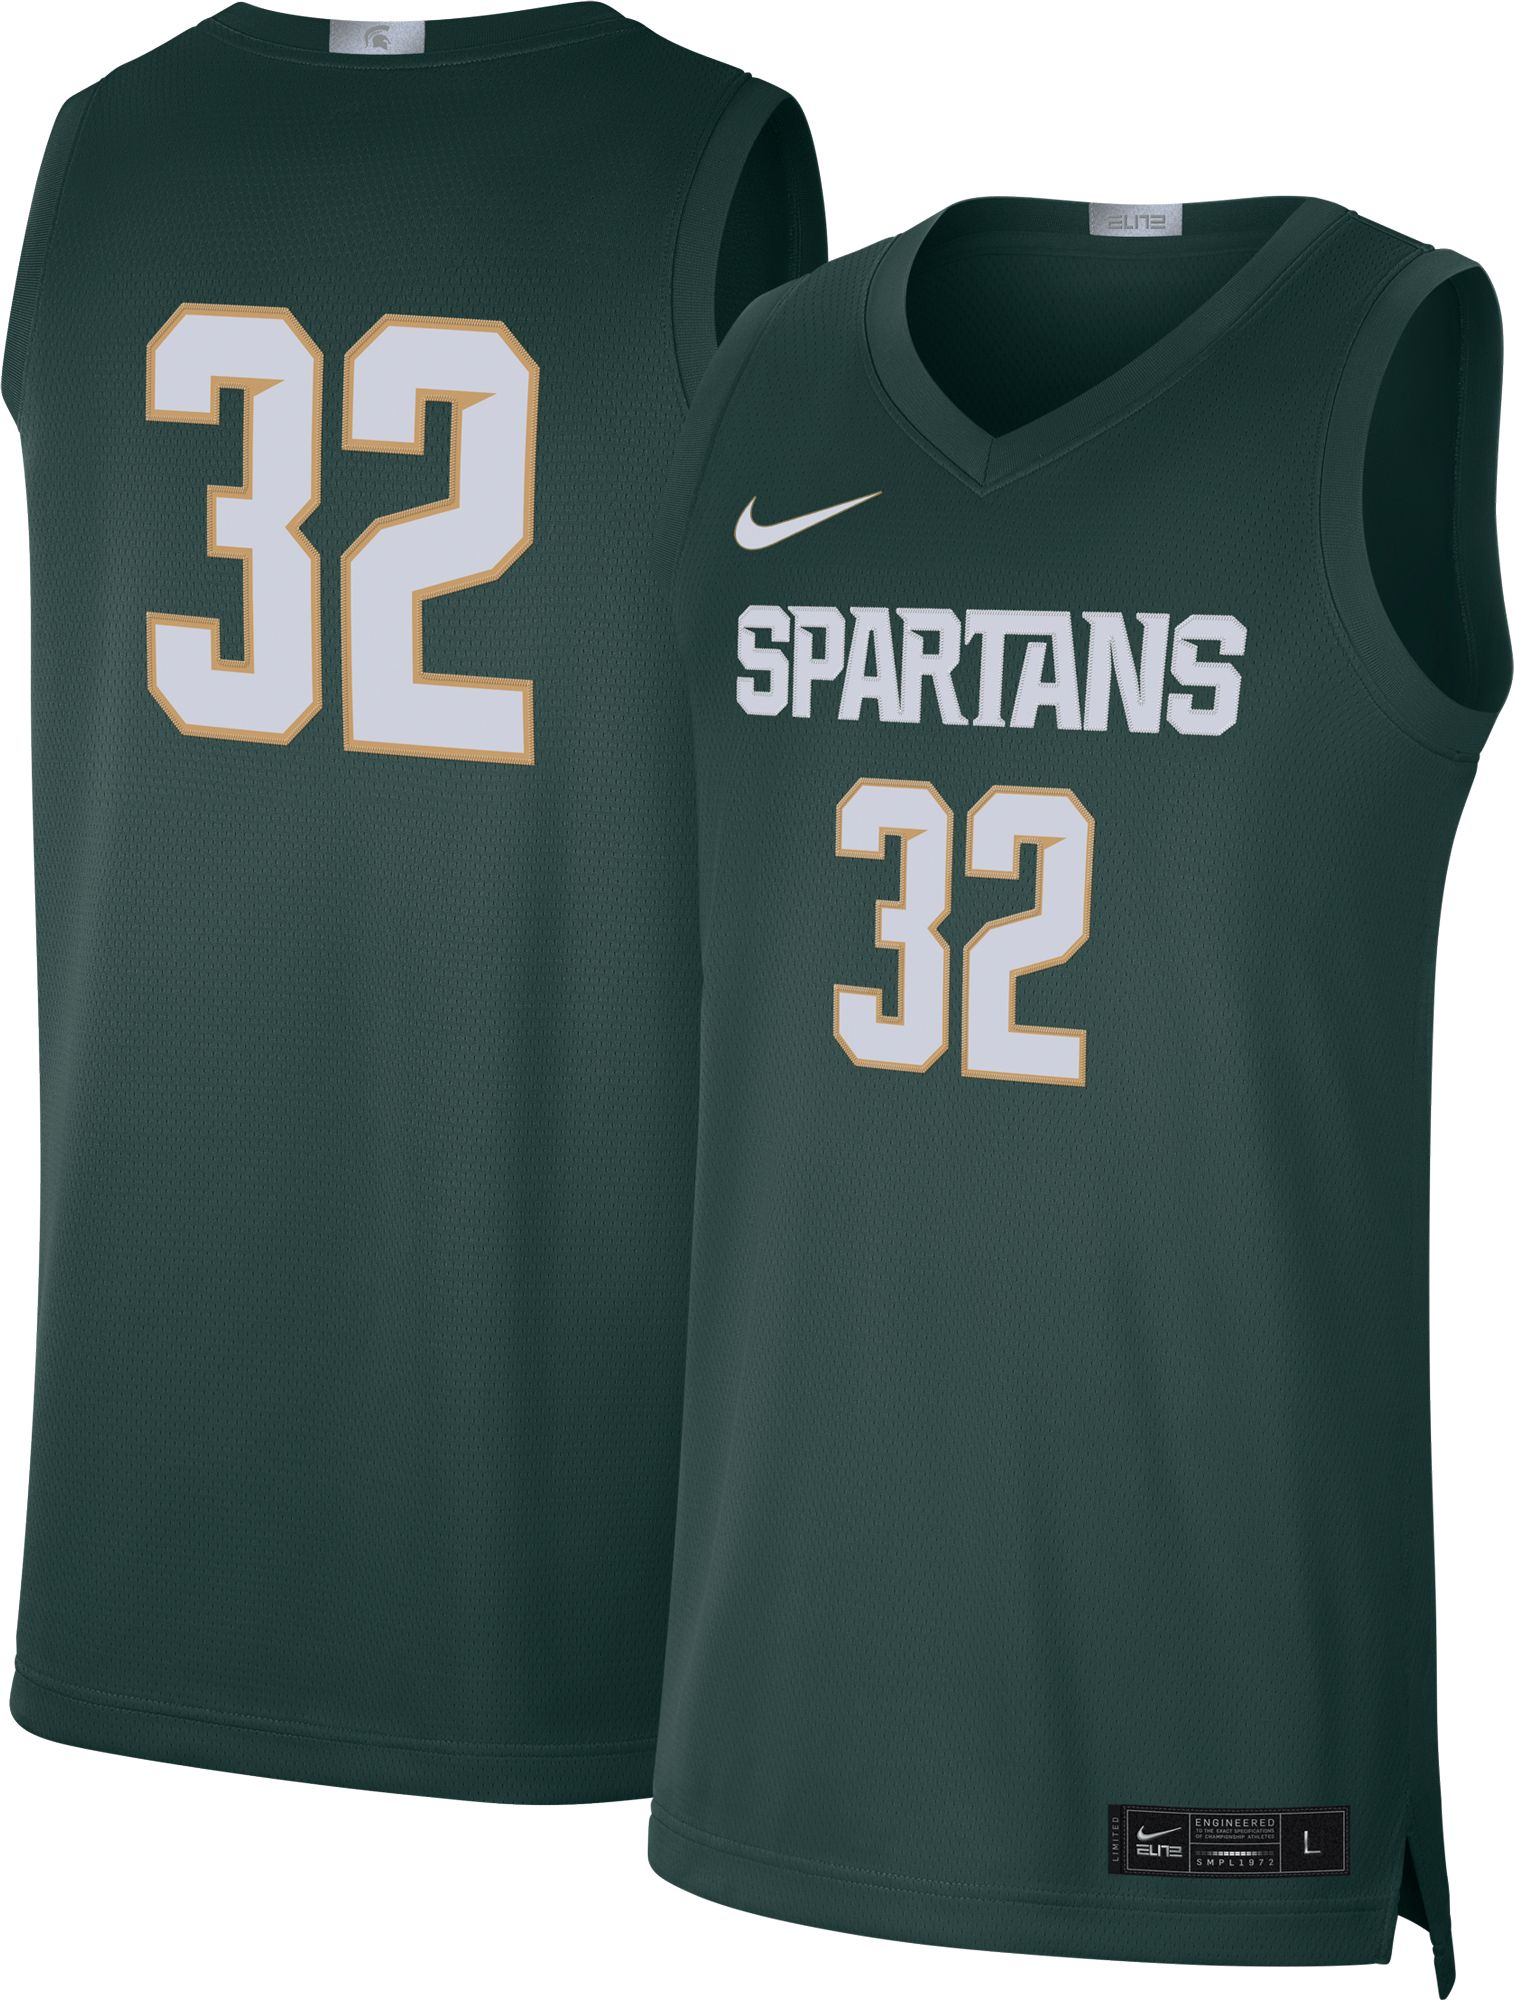 michigan state spartans jersey